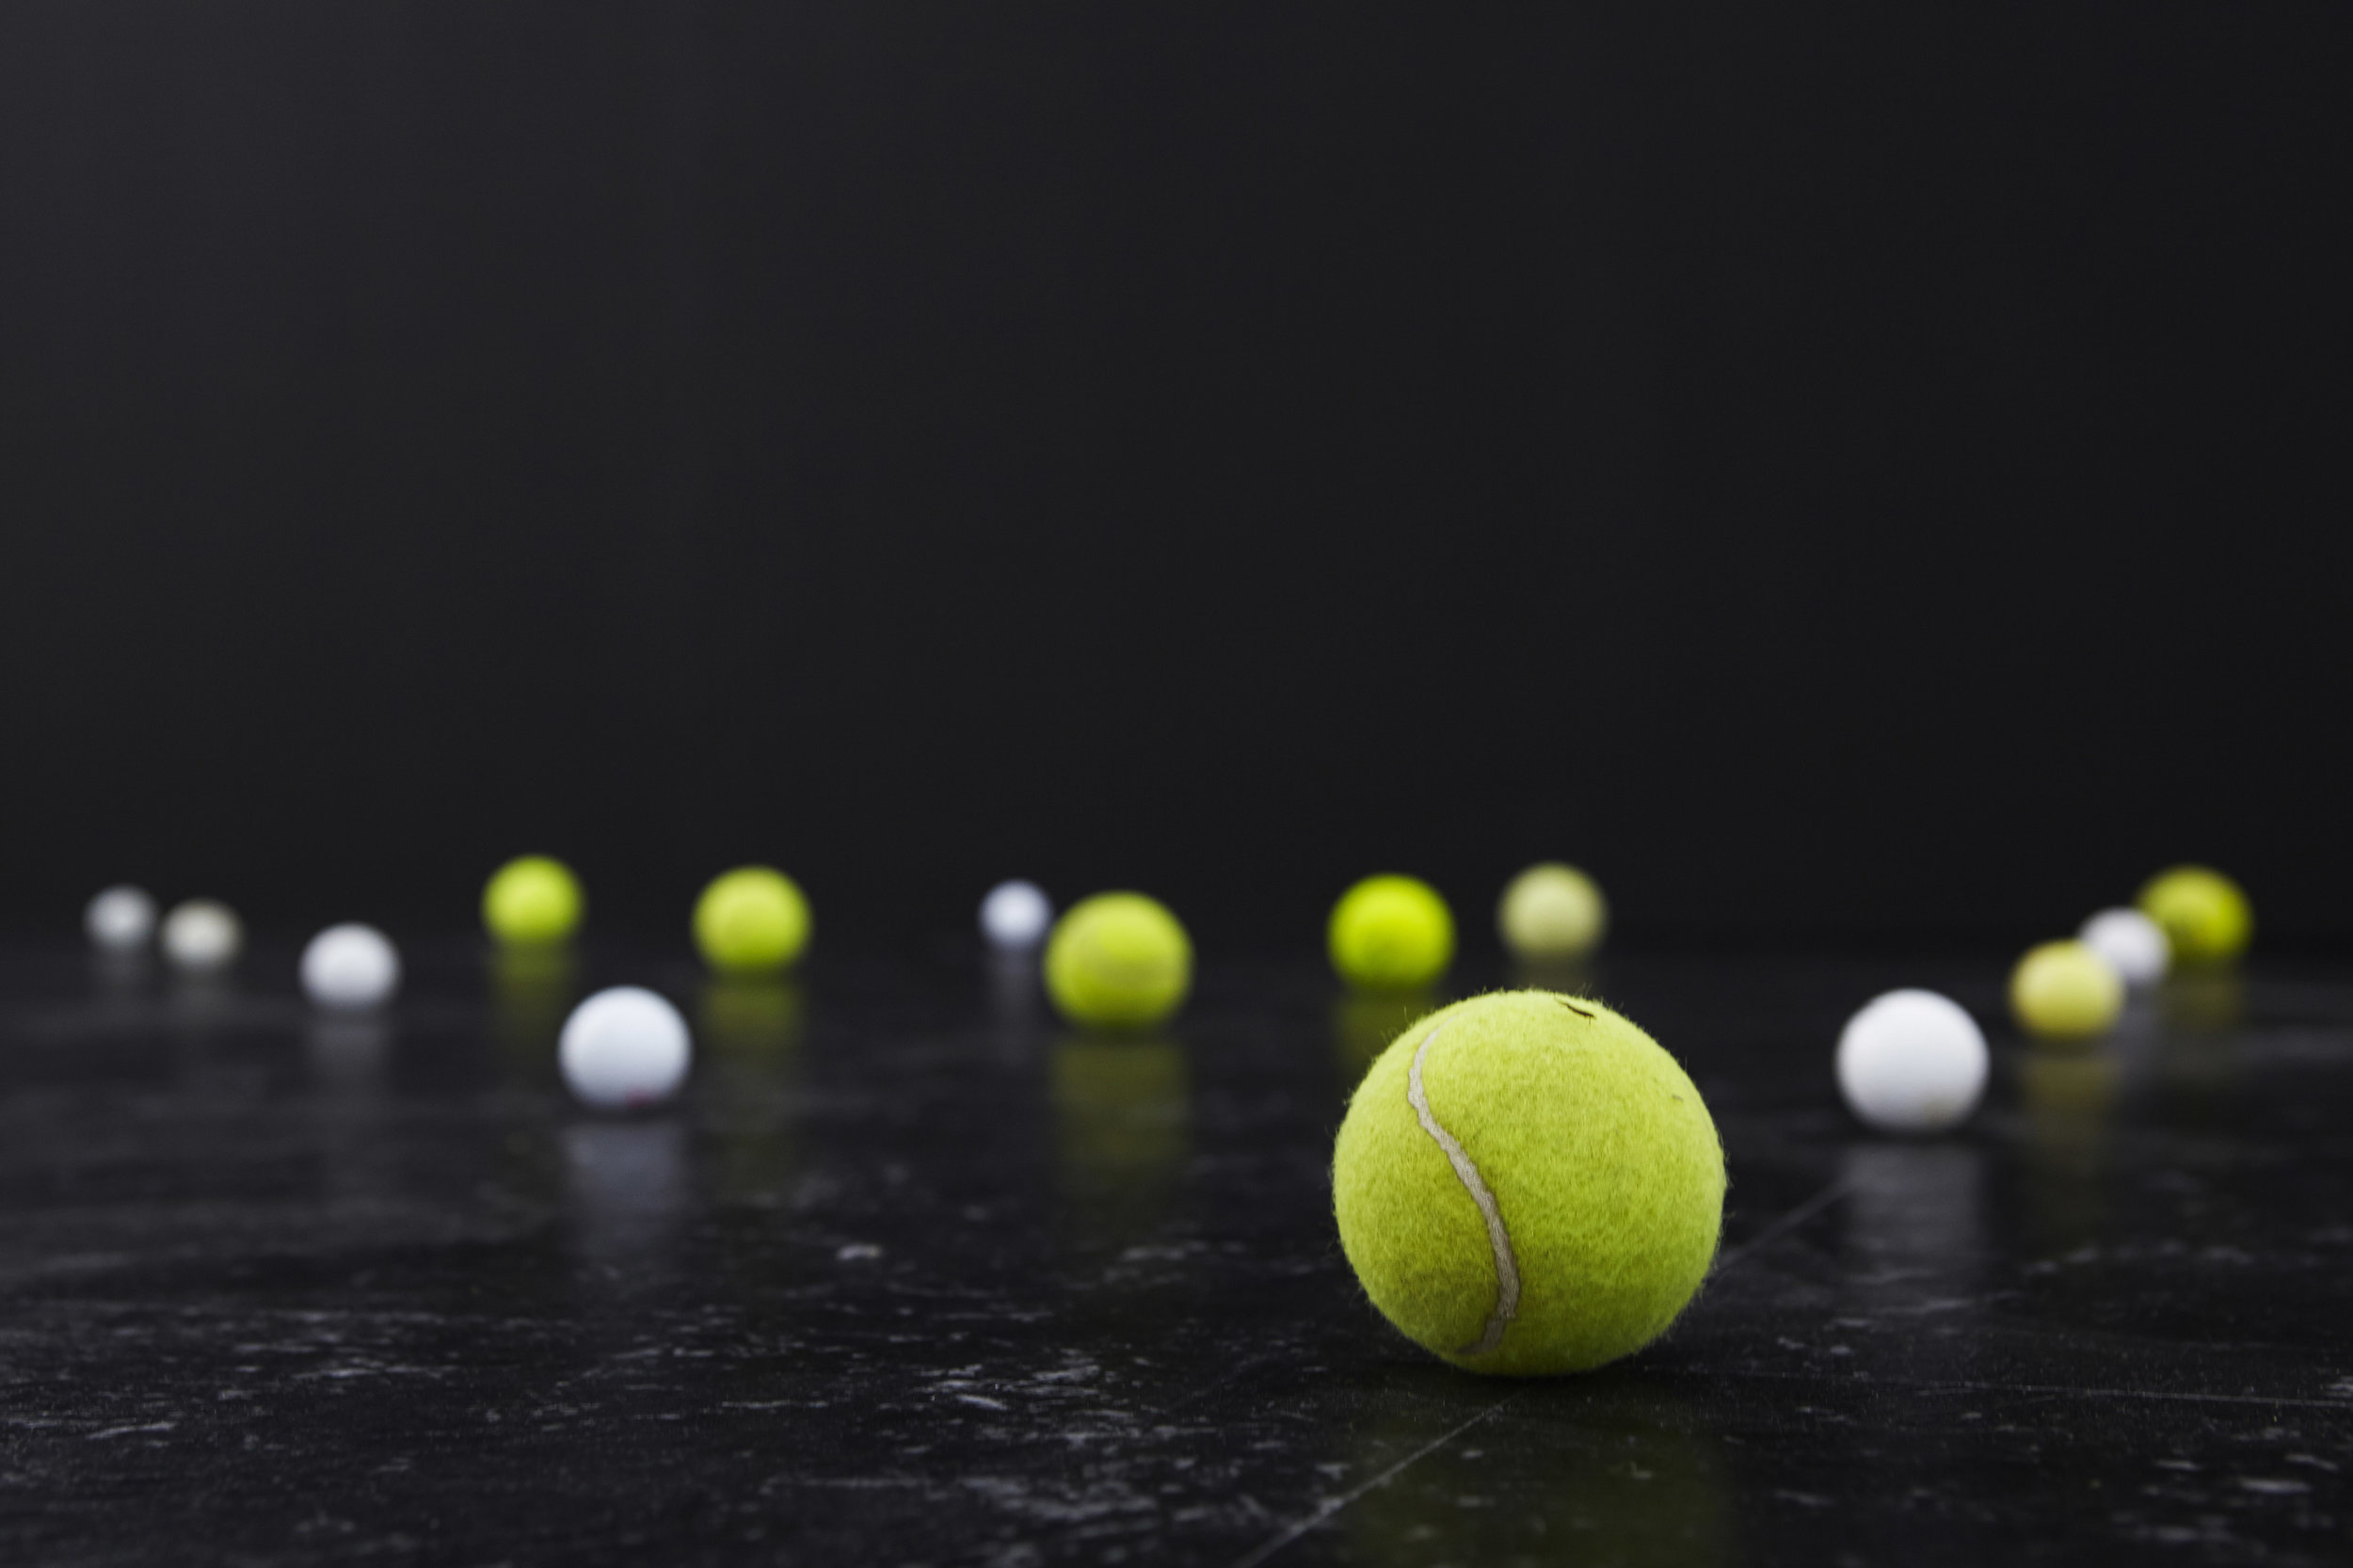 Orbit  , 2014, installation of found golf balls and tennis balls, vinyl floor tiles, paint, installation view,   THE CLOSED DOOR / THE OPEN DOOR   (with Justin Balmain), 2014, Alaska Projects, Sydney. Photo: Zan Wimberley. Copyright JD Reforma